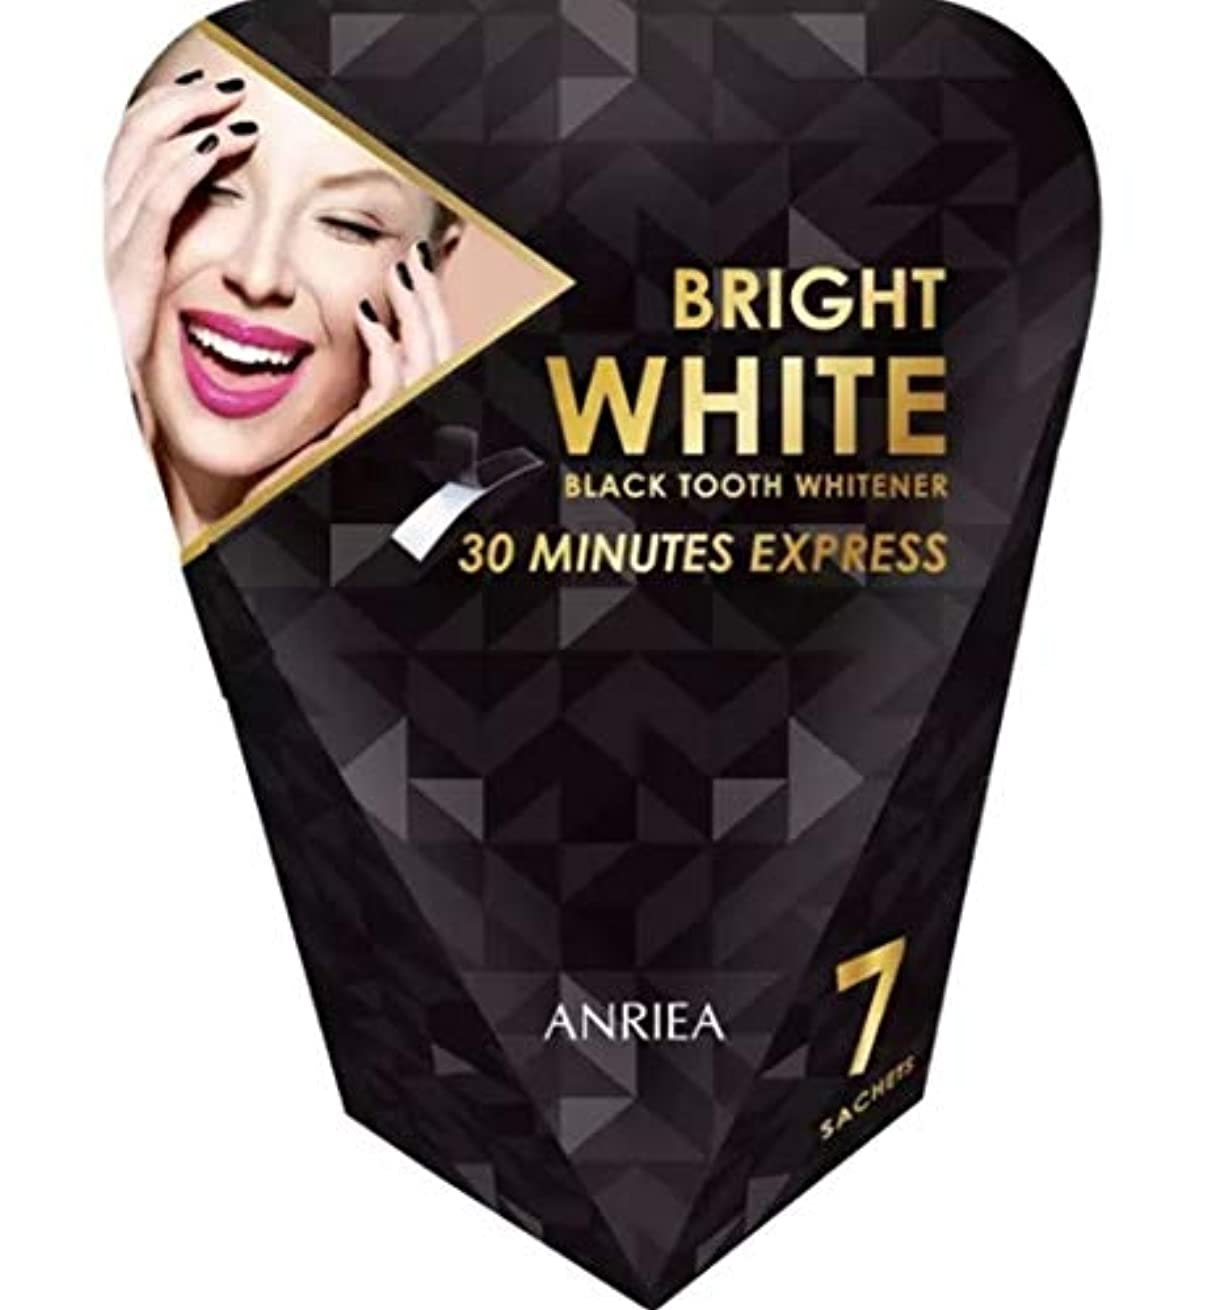 Anriea 3d white teeth Whitestrips Professional effect ANRIEA 3D ホワイトストリッププロフェッショナルエフェクト